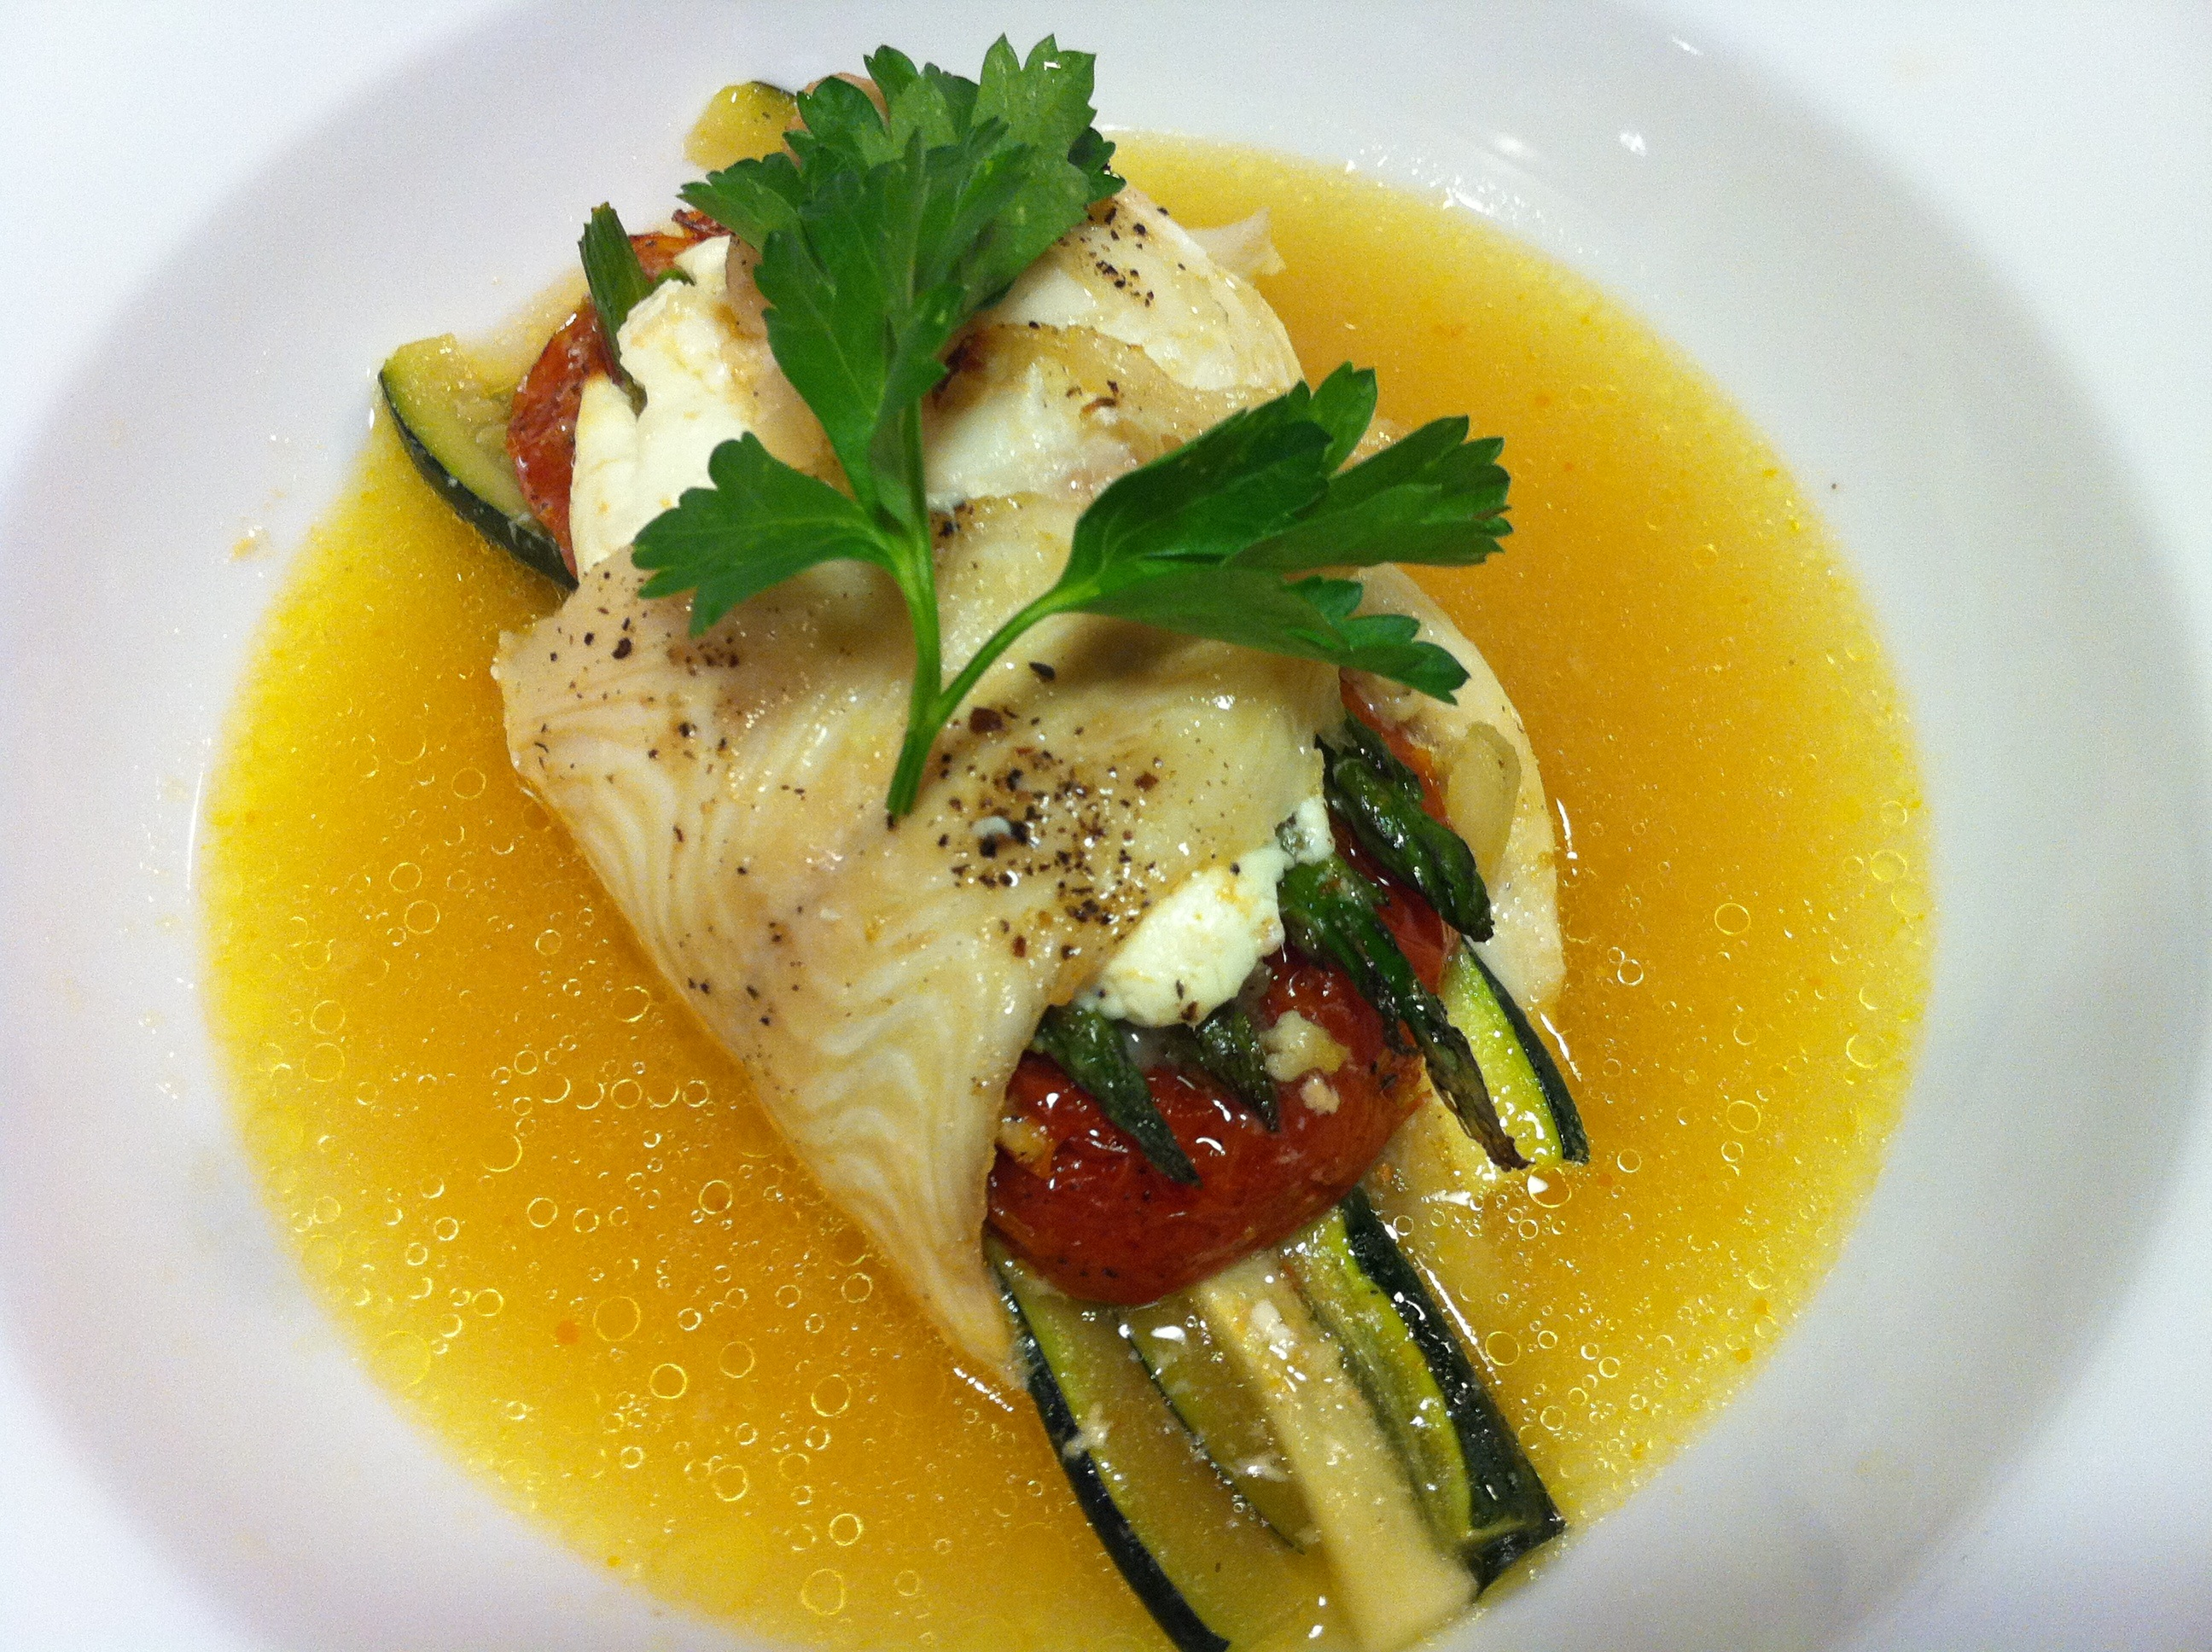 Lemon sole wrapped around veggies (Photo Credit: Adroit Ideals)